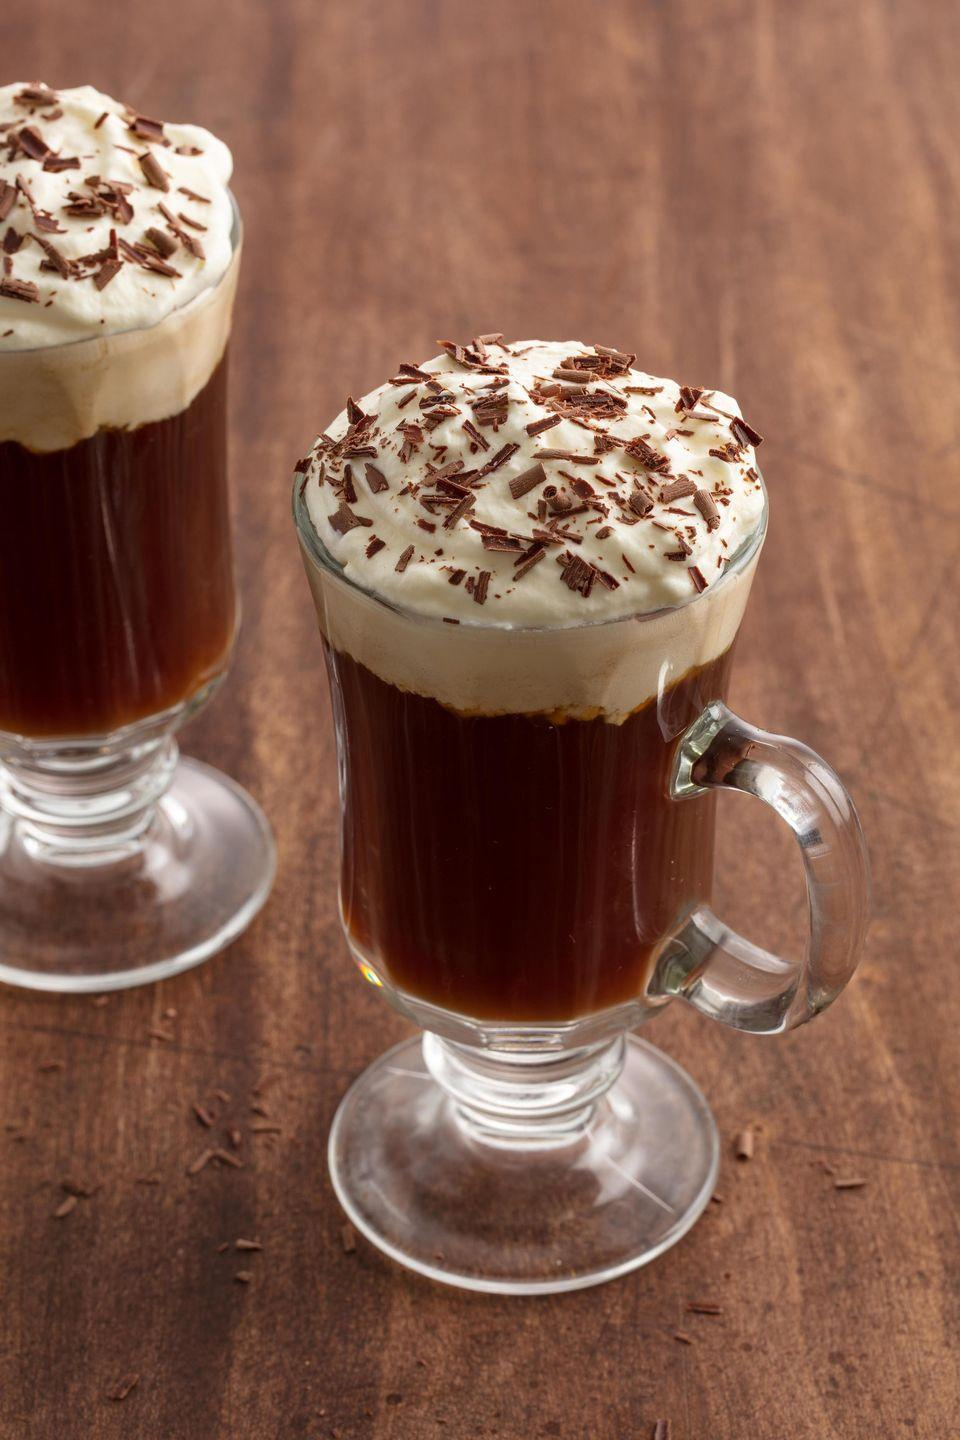 """<p>Coffee and whiskey never tasted so good.</p><p>Get the recipe from <a href=""""https://www.delish.com/cooking/recipe-ideas/recipes/a58347/irish-coffee-recipe/"""" rel=""""nofollow noopener"""" target=""""_blank"""" data-ylk=""""slk:Delish"""" class=""""link rapid-noclick-resp"""">Delish</a>.</p>"""